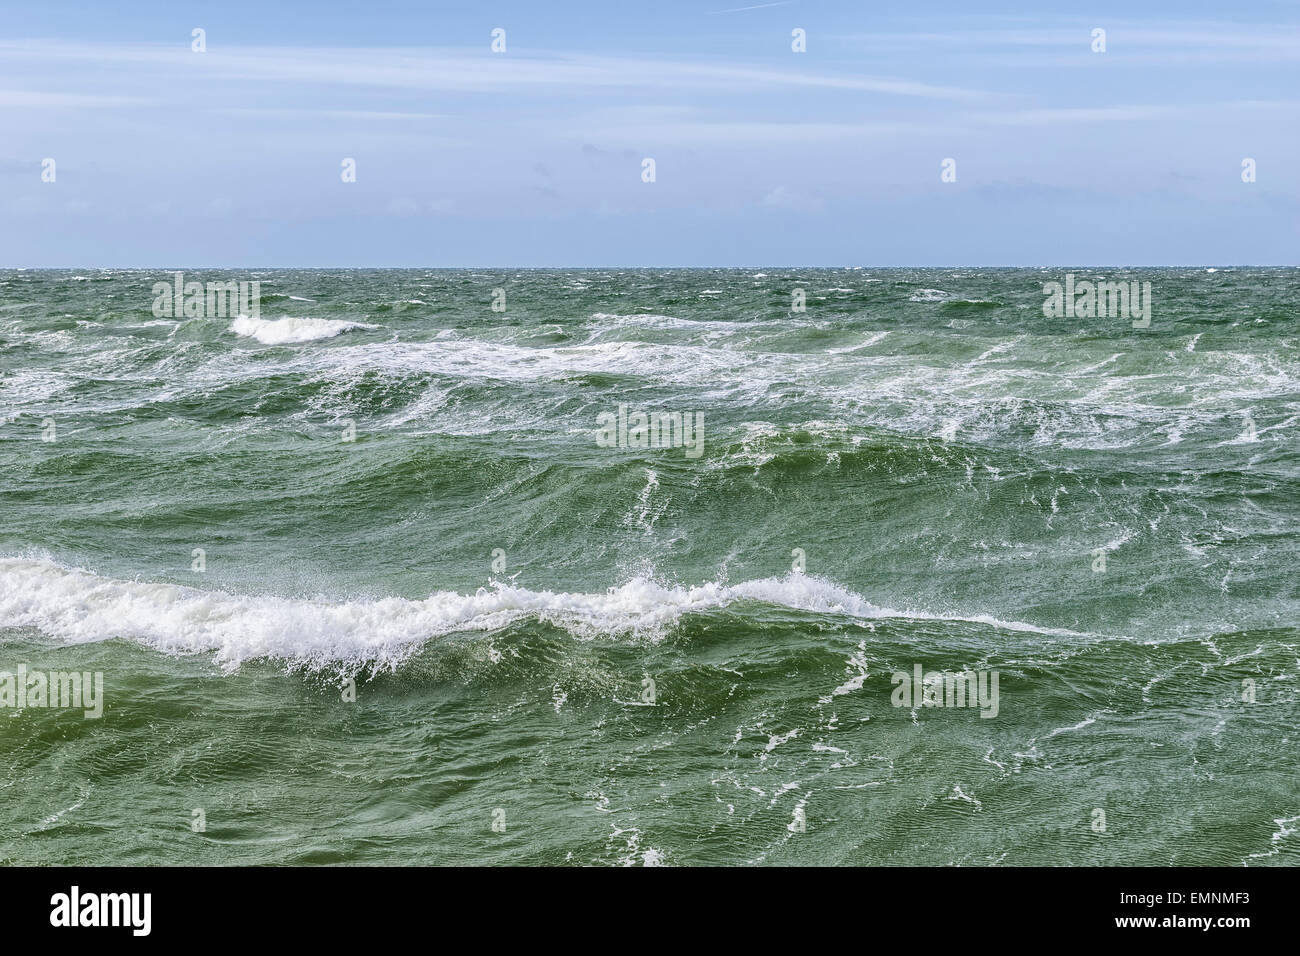 Image of the surface of the water and waves of the Baltic Sea on a stormy day Stock Photo